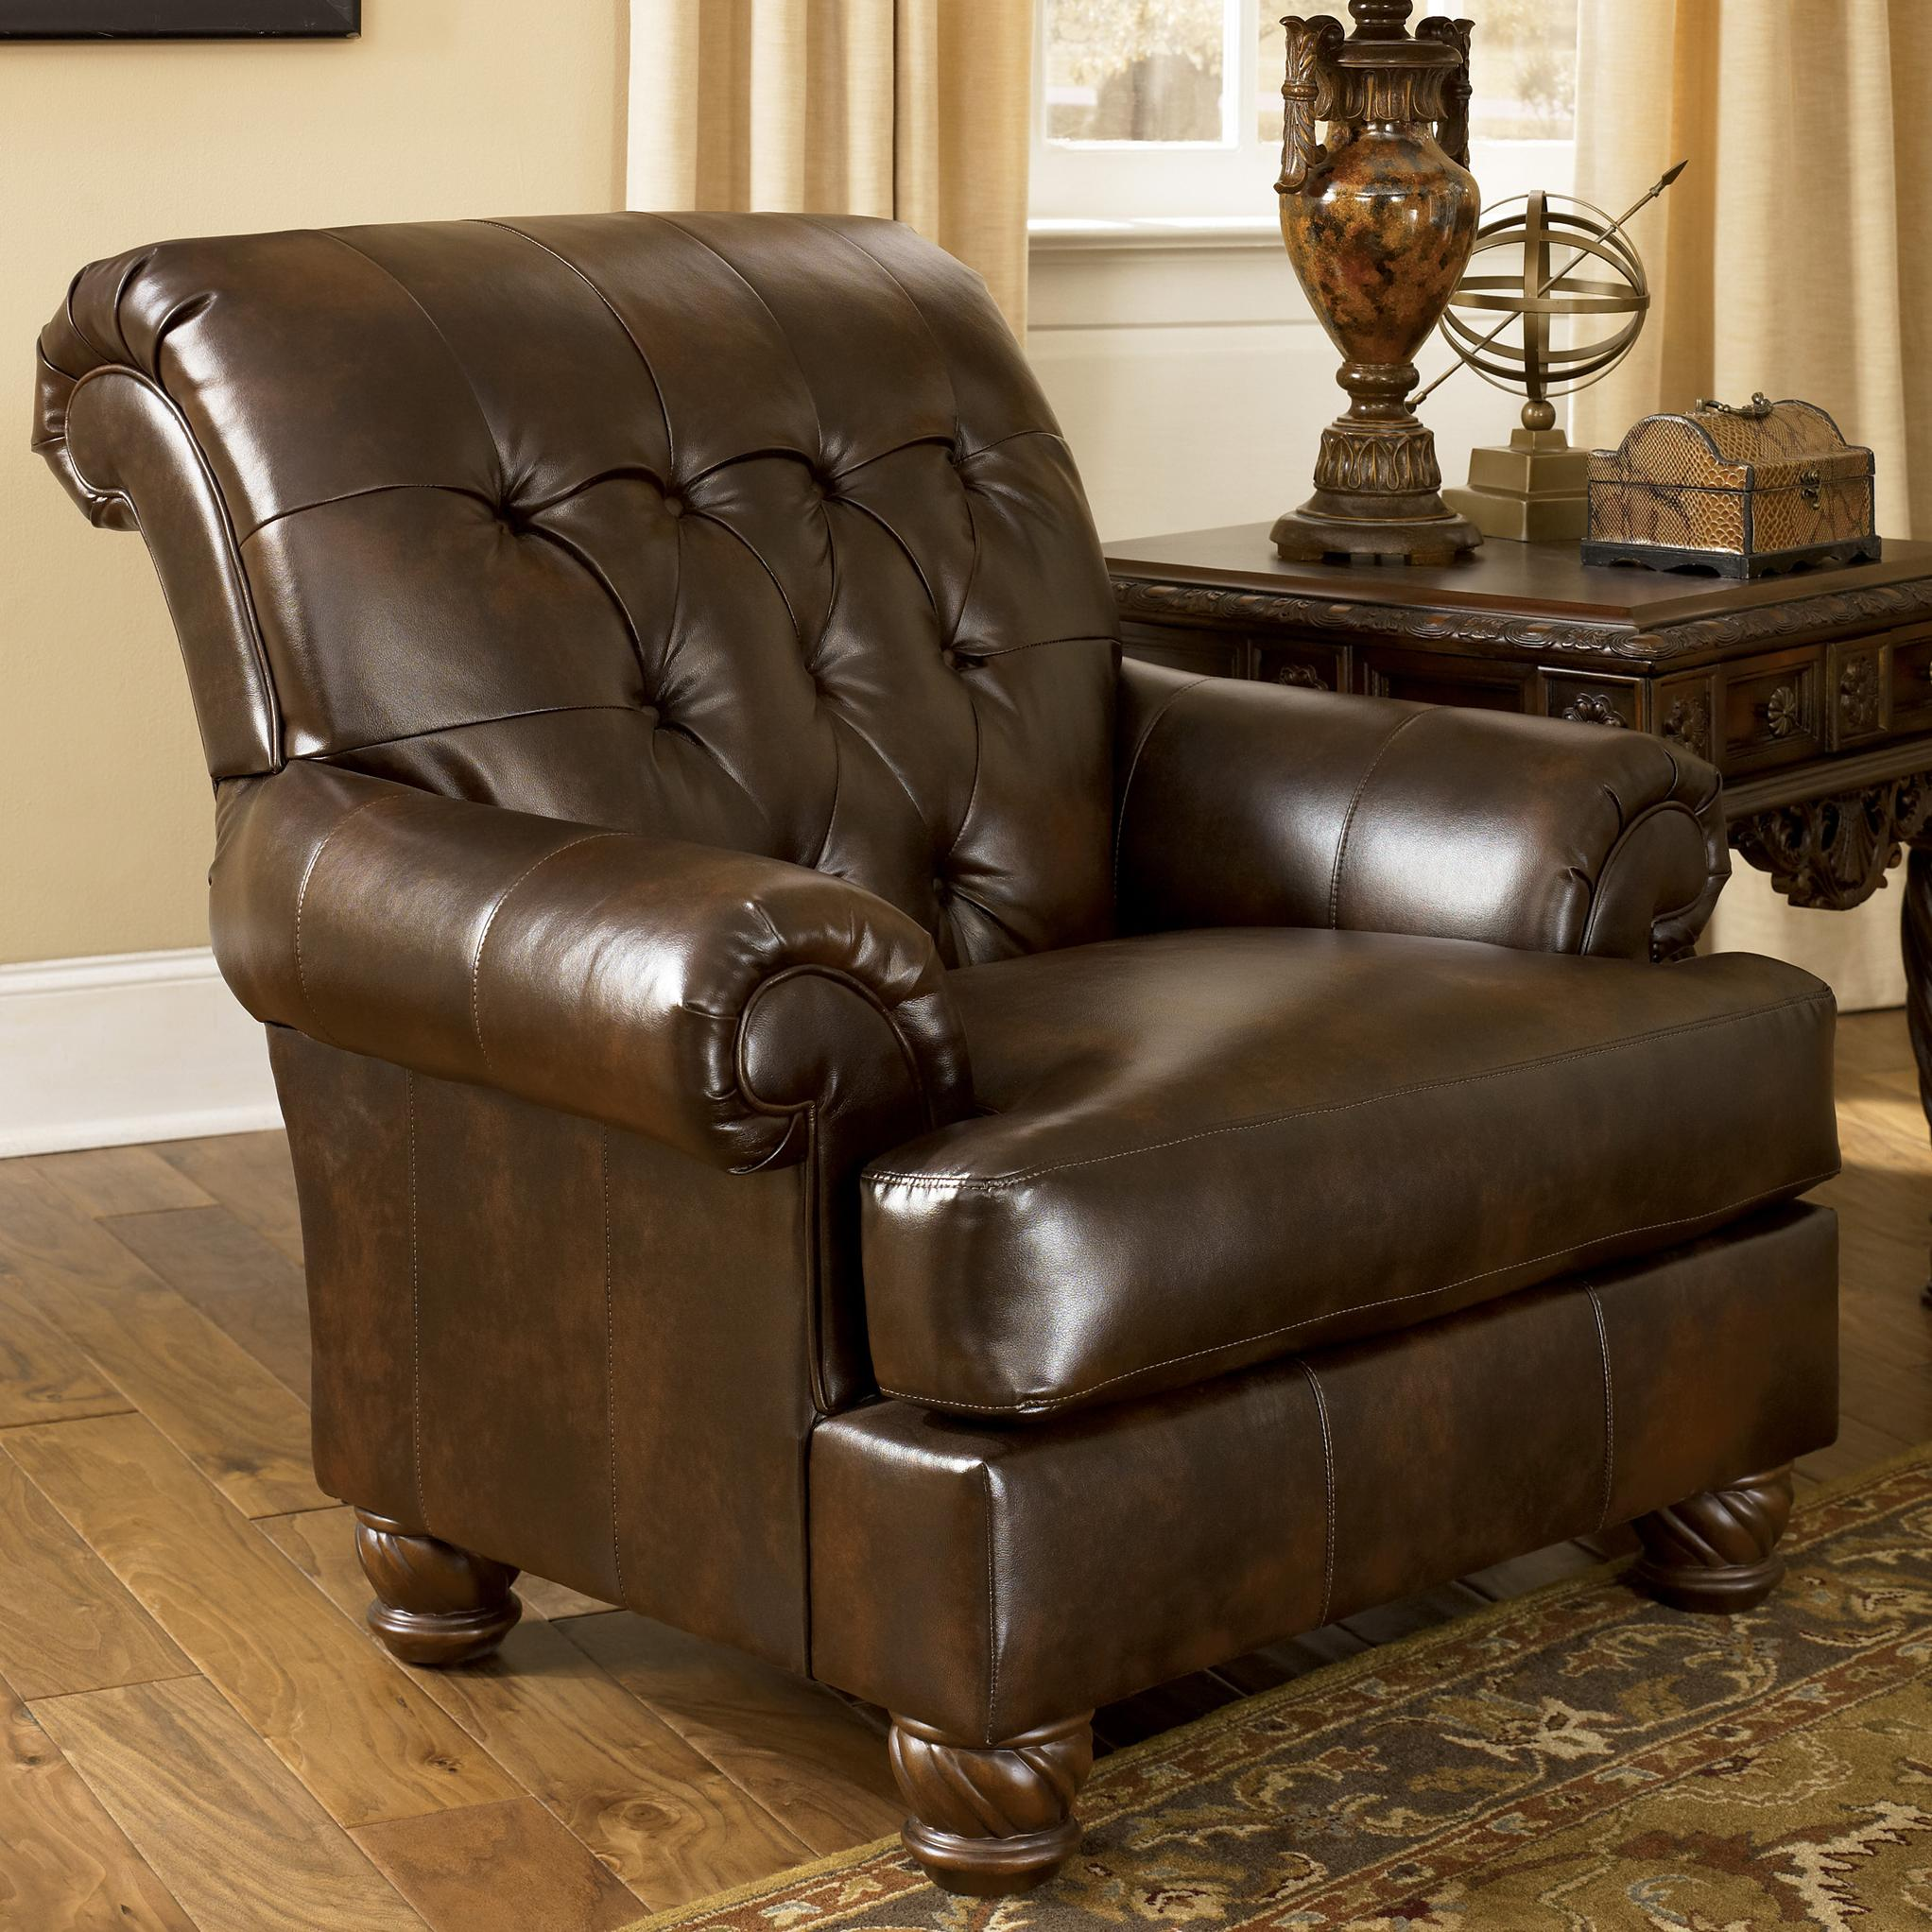 Accent Chairs To Go With Brown Leather Sofa Fresco Durablend Antique Traditional Accent Chair With Tufted Back And Bun Feet By Signature Design By Ashley At Northeast Factory Direct